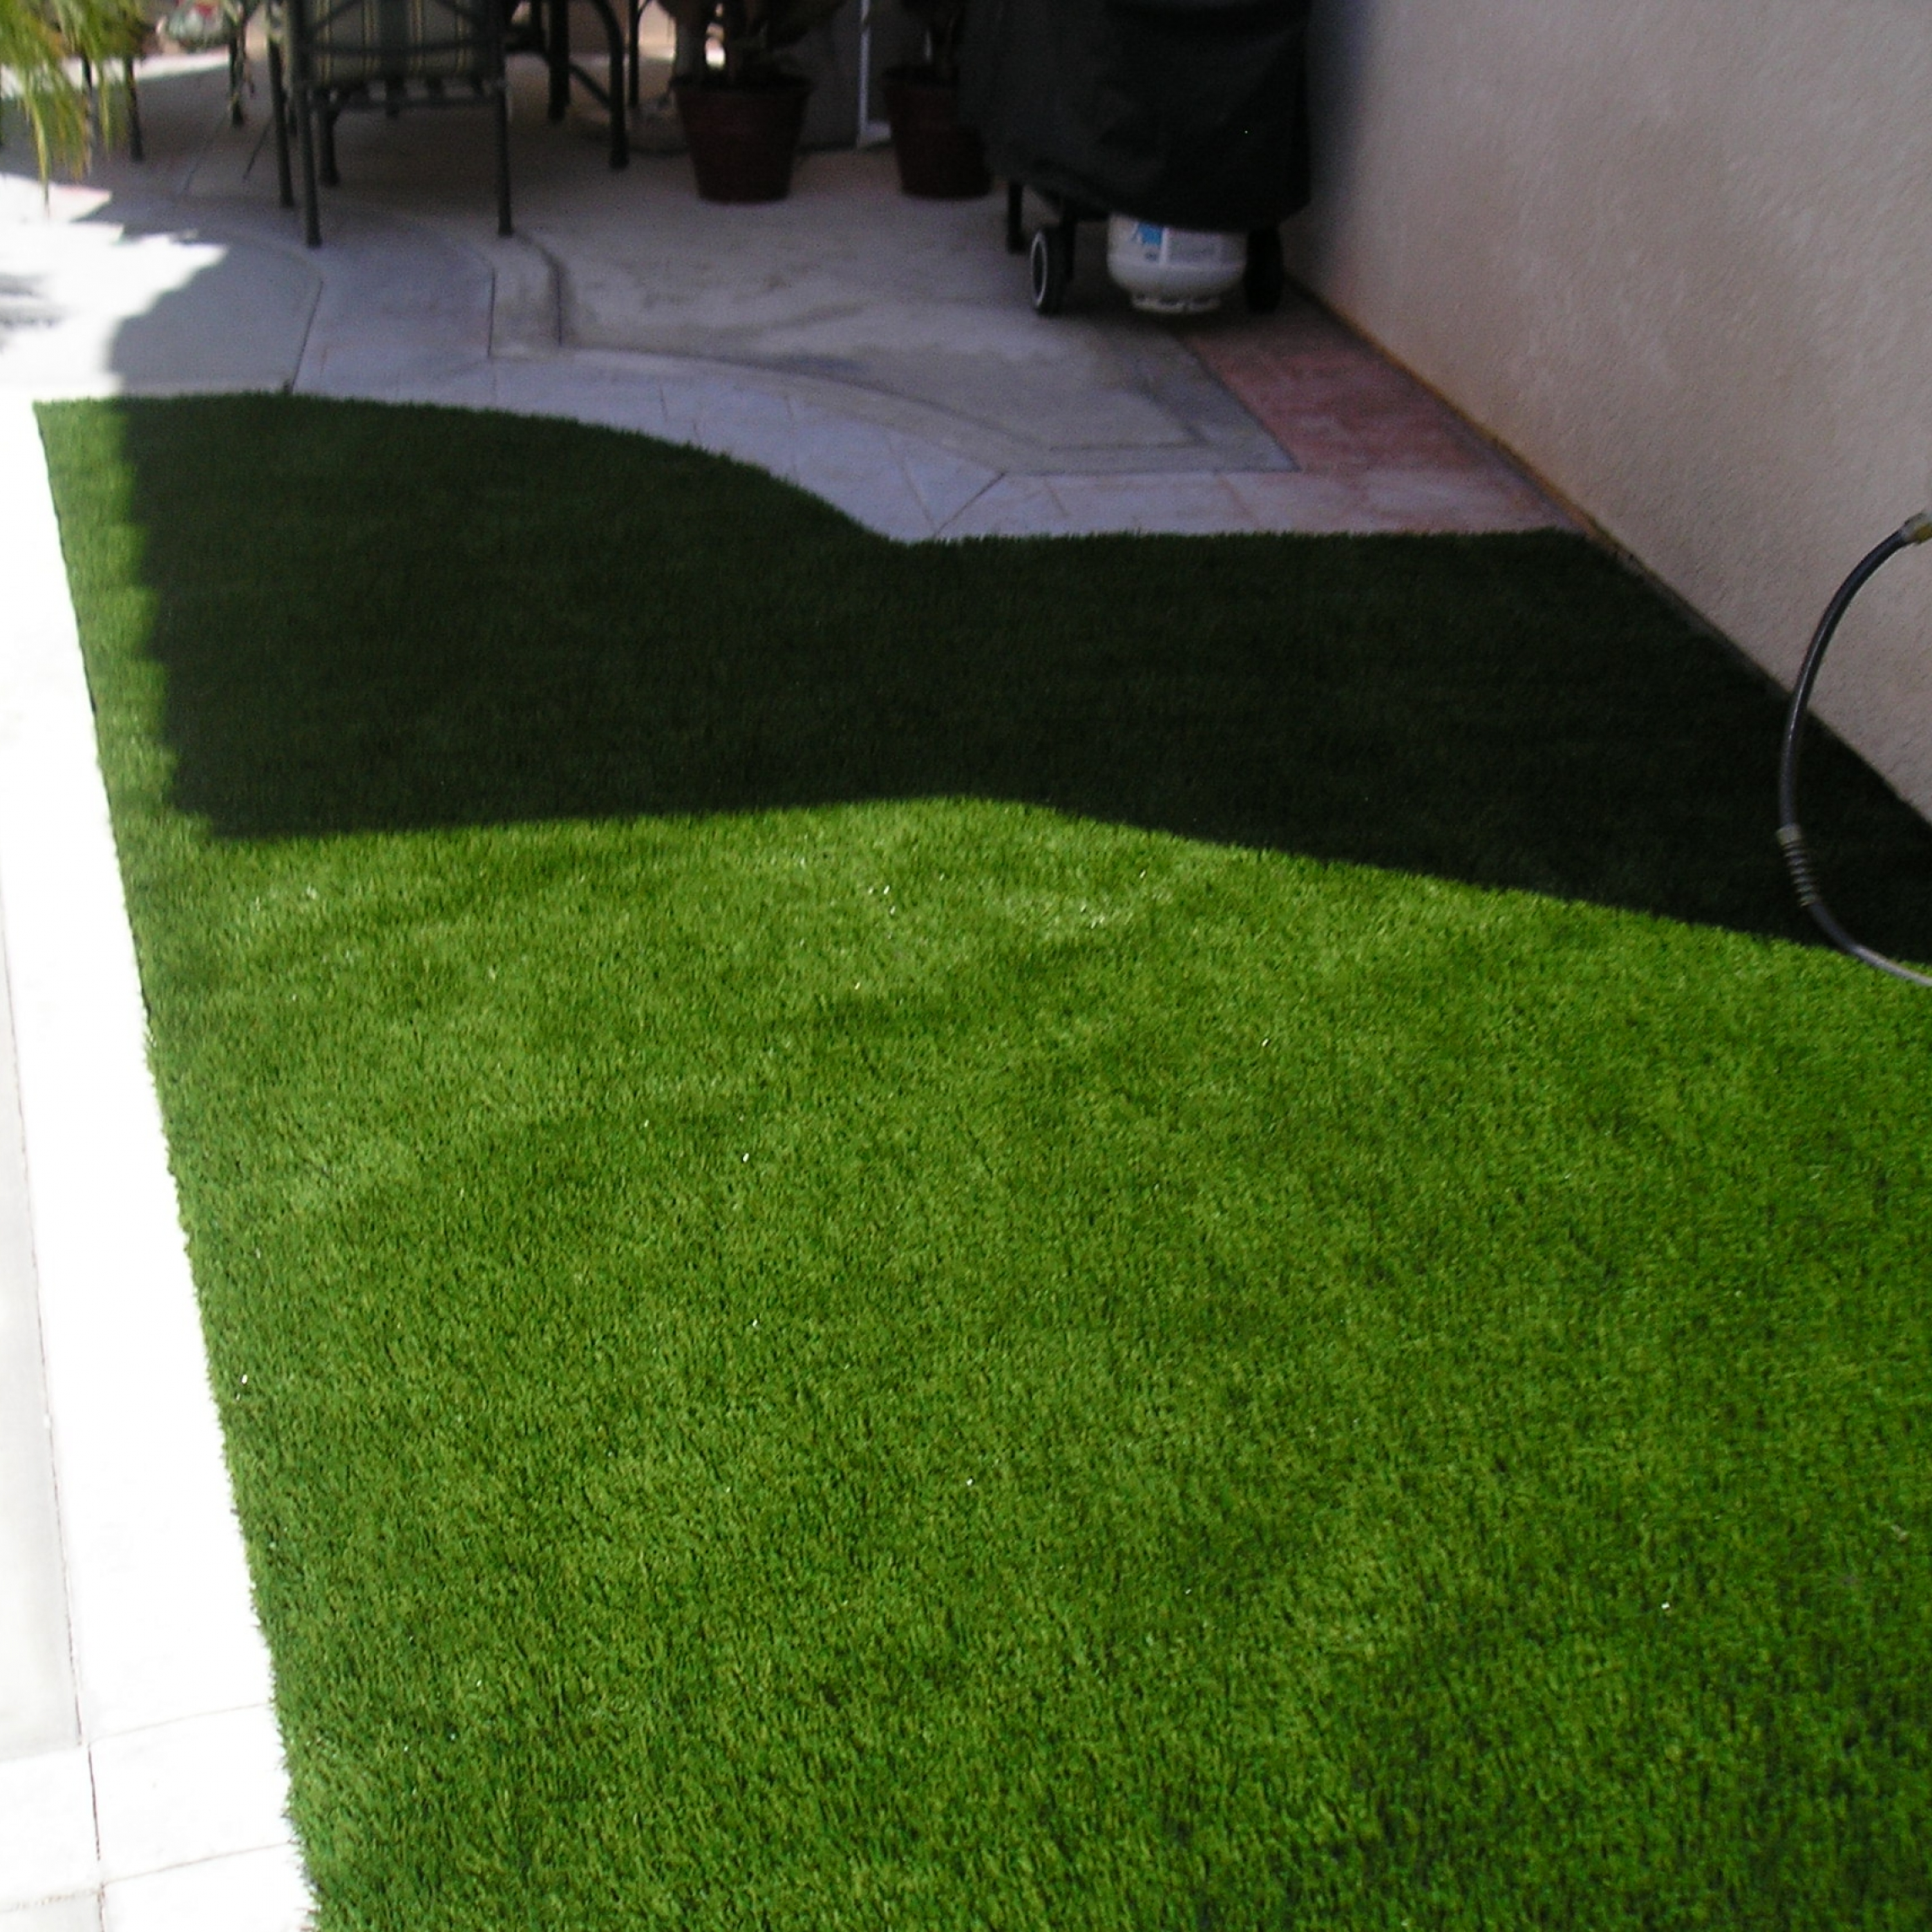 Super Natural 80 artificial turf,synthetic turf,artificial turf installation,how to install artificial turf,used artificial turf